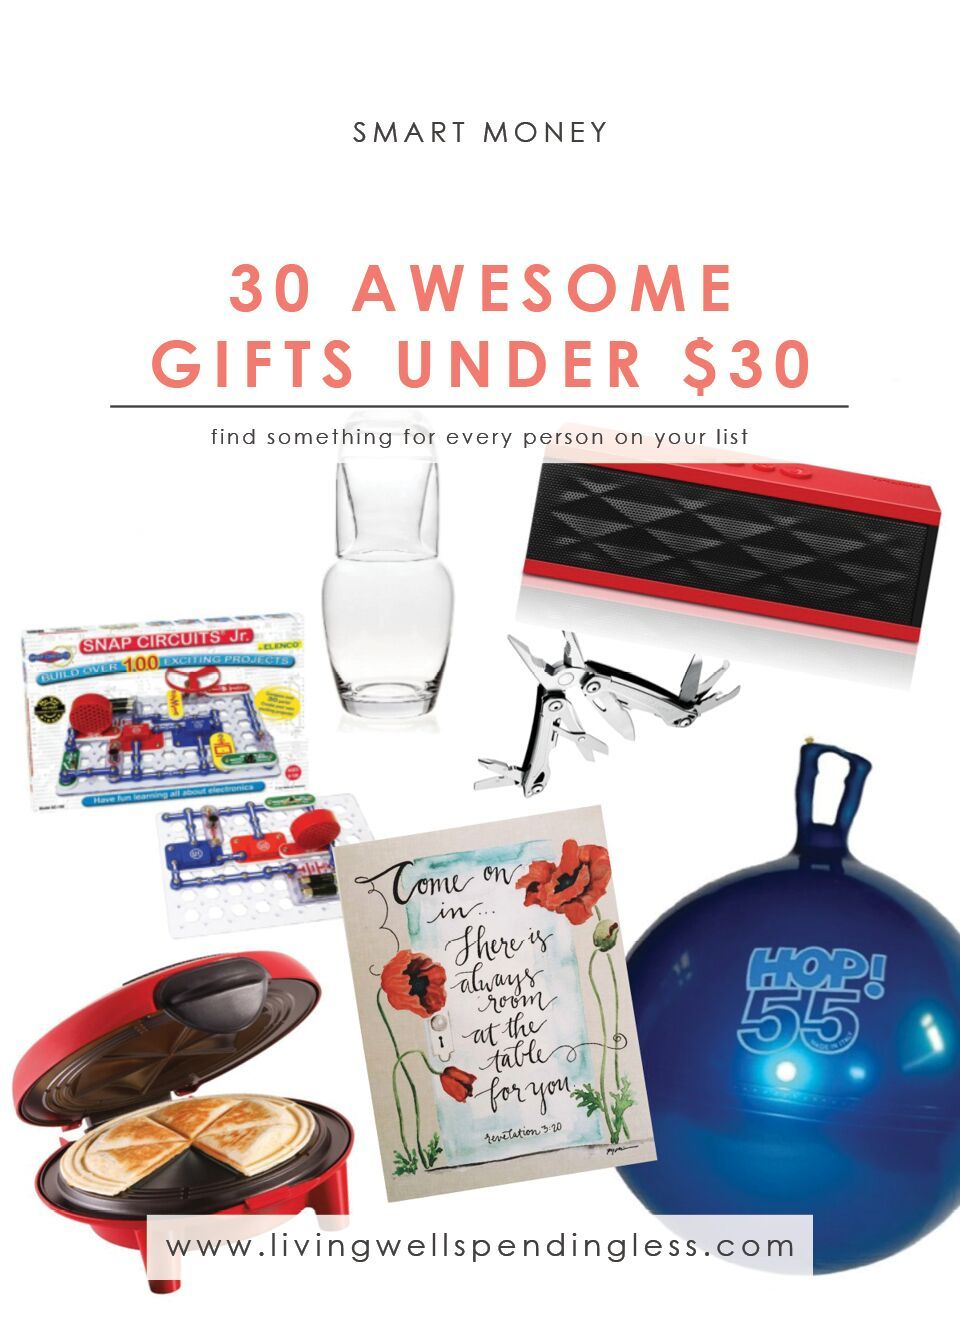 30 awesome gifts under 30 money christmas holidays special occasions money saving tips gift ideas under 30 cheap gift ideas